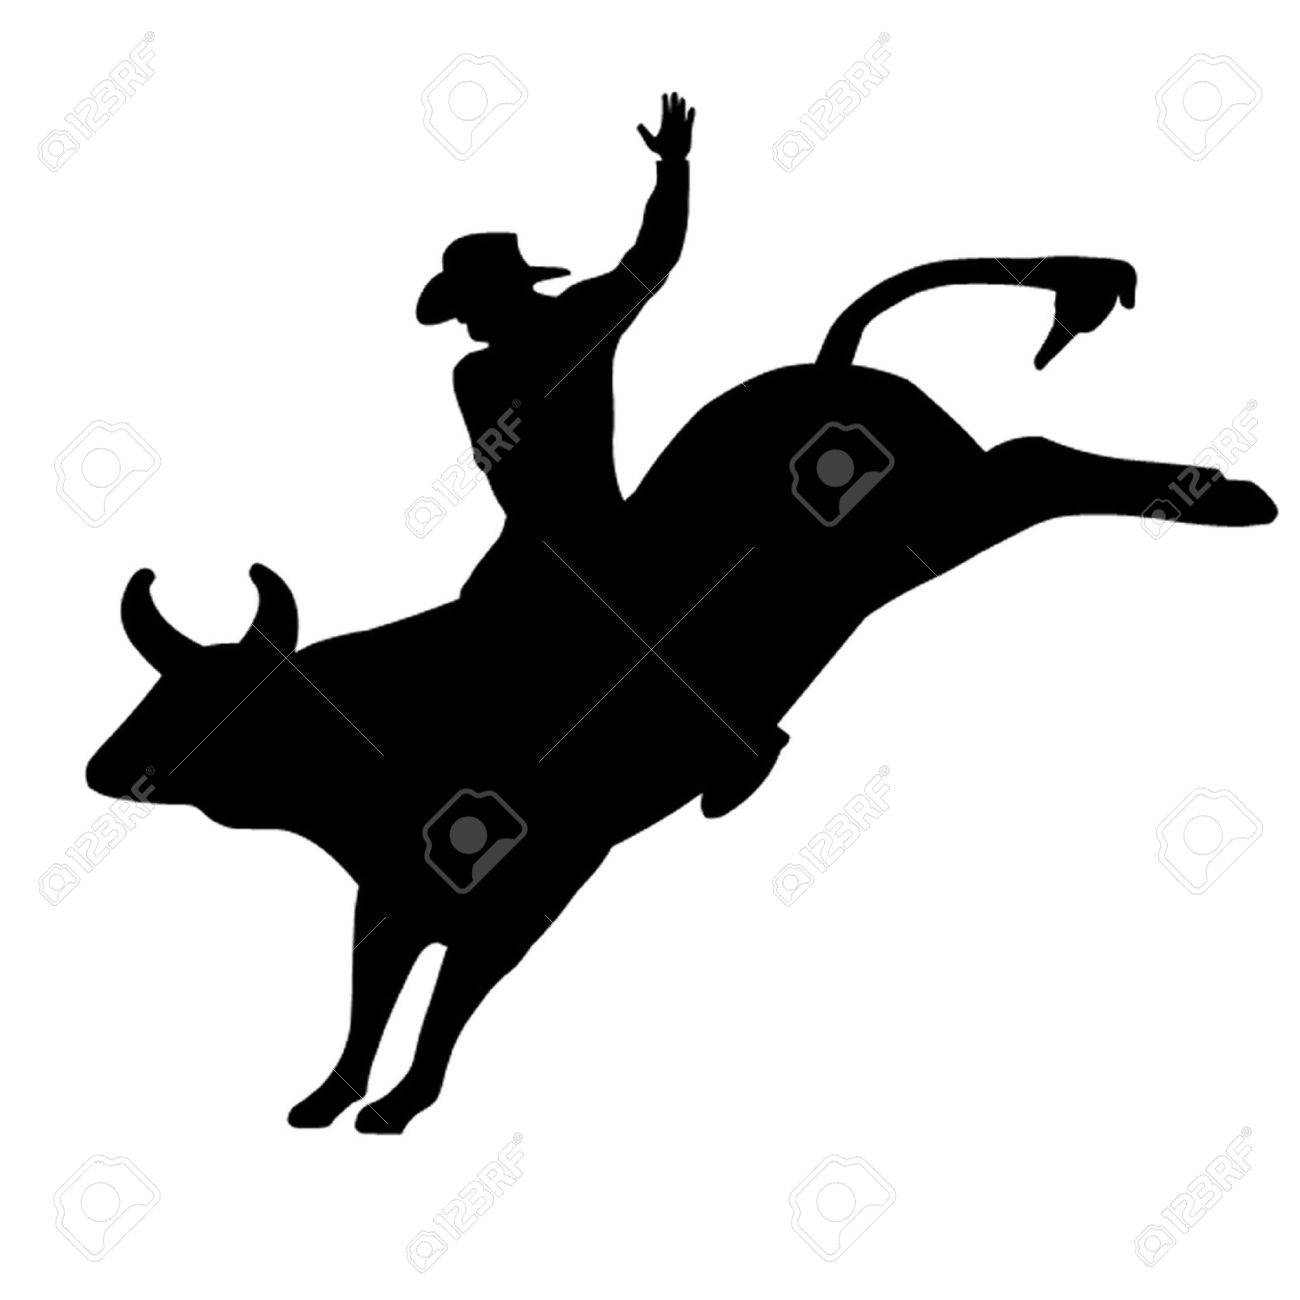 Bull rider clipart 3 » Clipart Station.